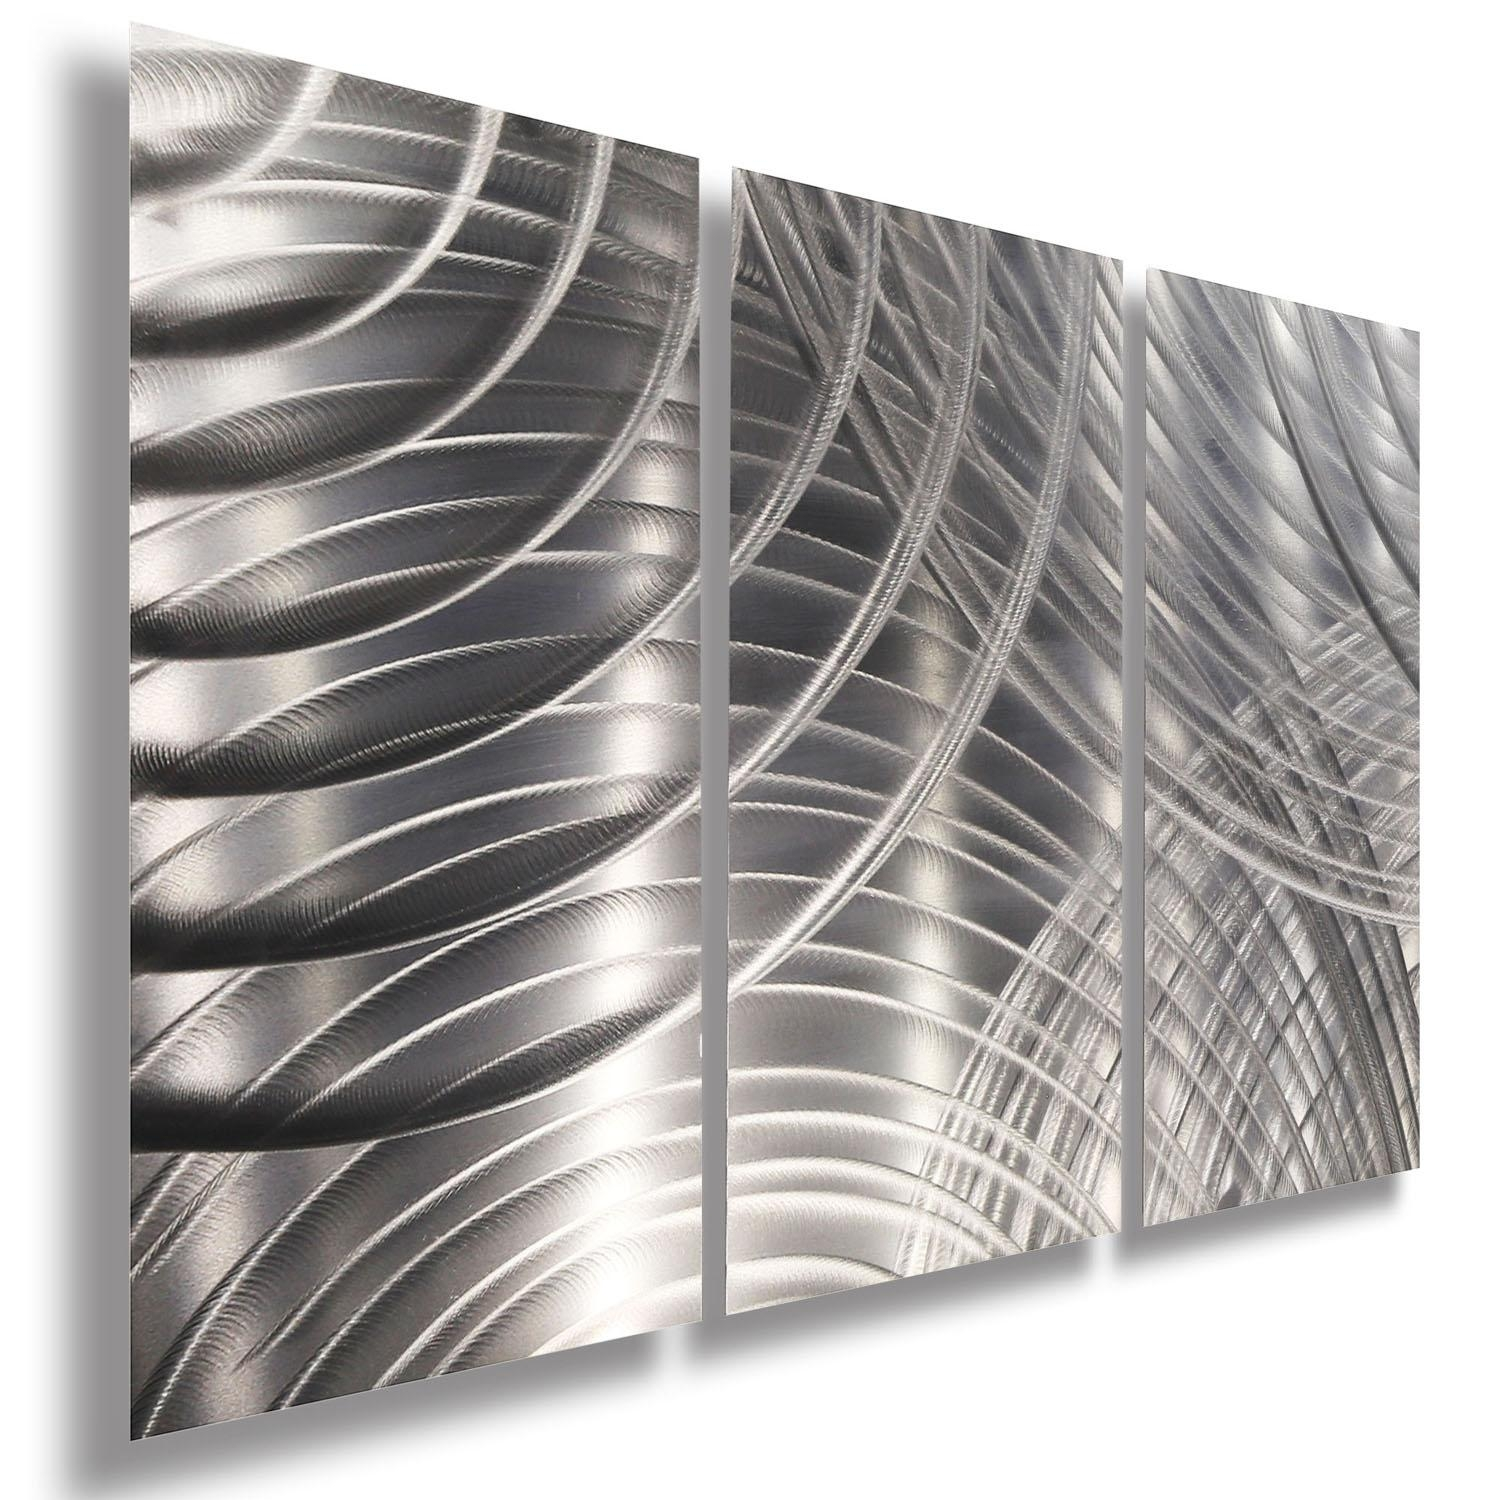 Equinox Ii 3P – All Silver 3 Panel Metal Wall Art Accentjon Intended For Black Silver Wall Art (Image 4 of 20)